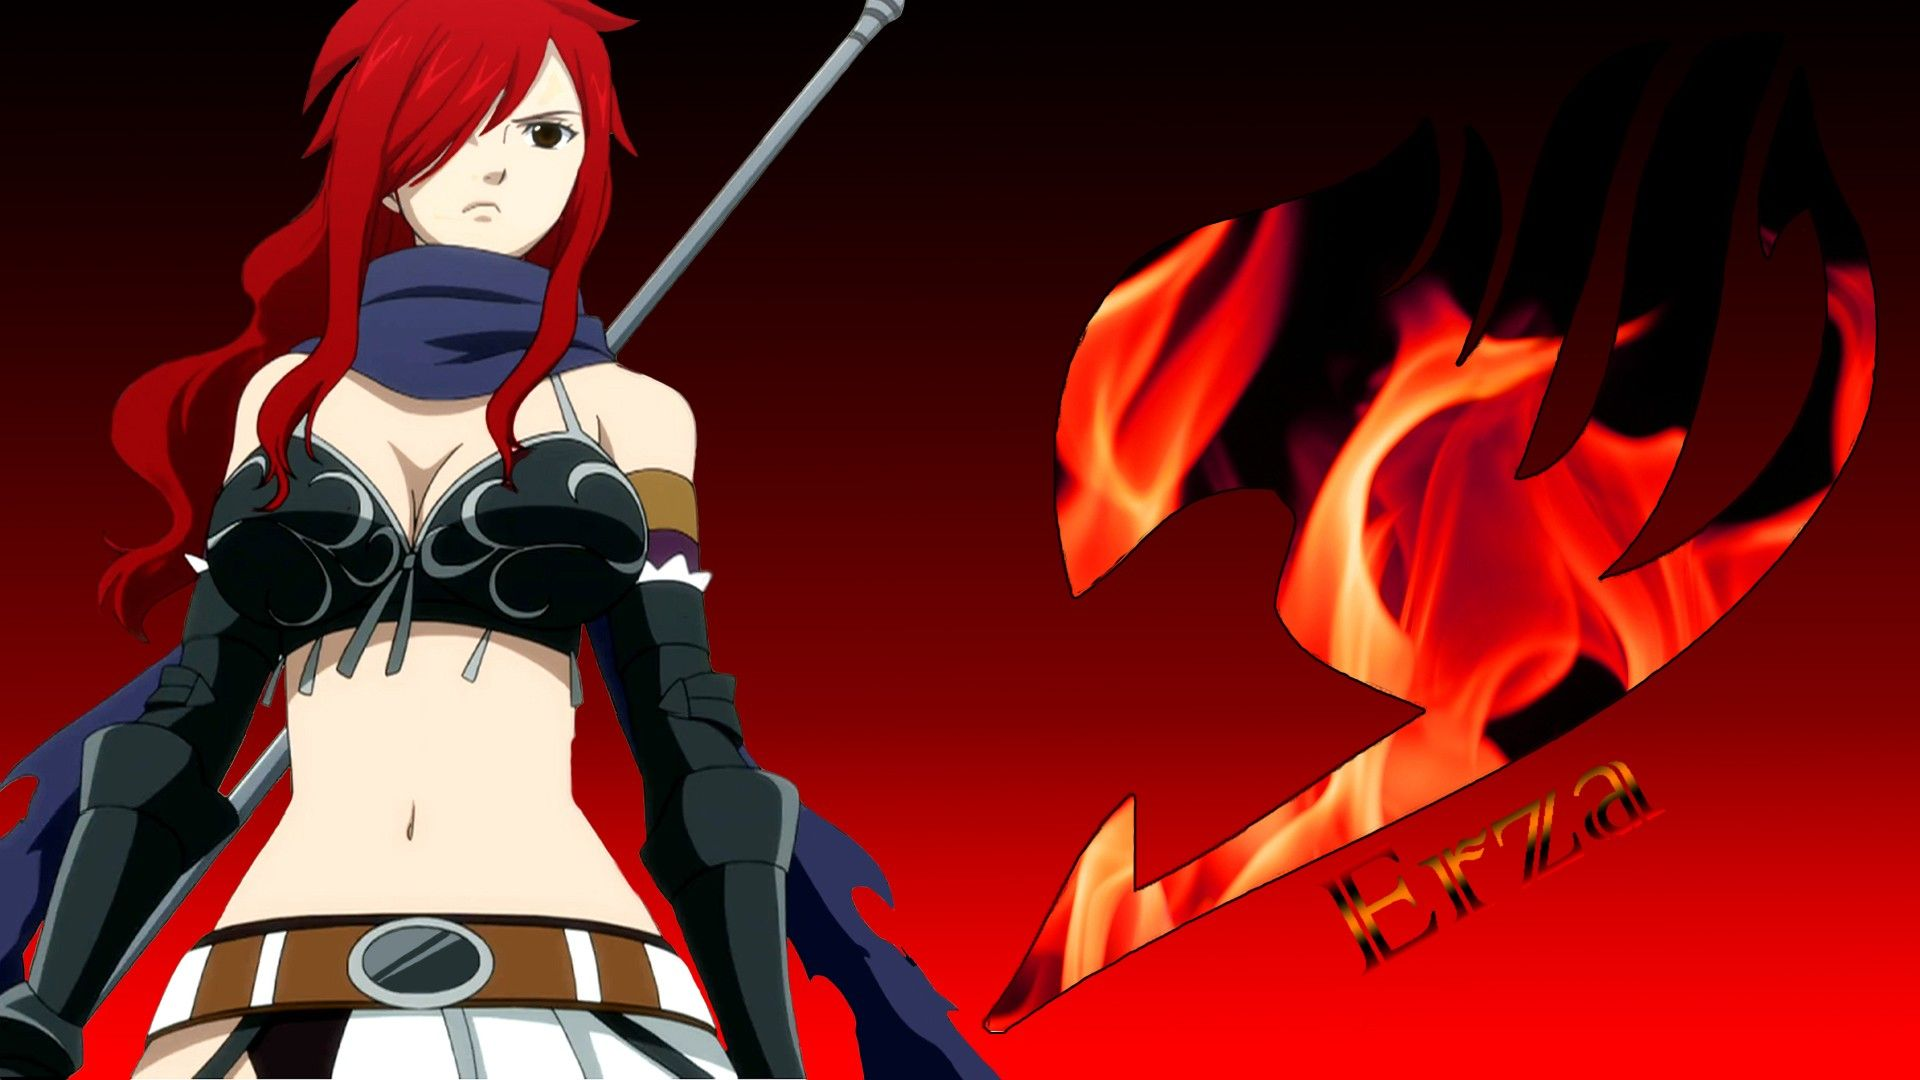 erza fairy tail background hd wallpaper